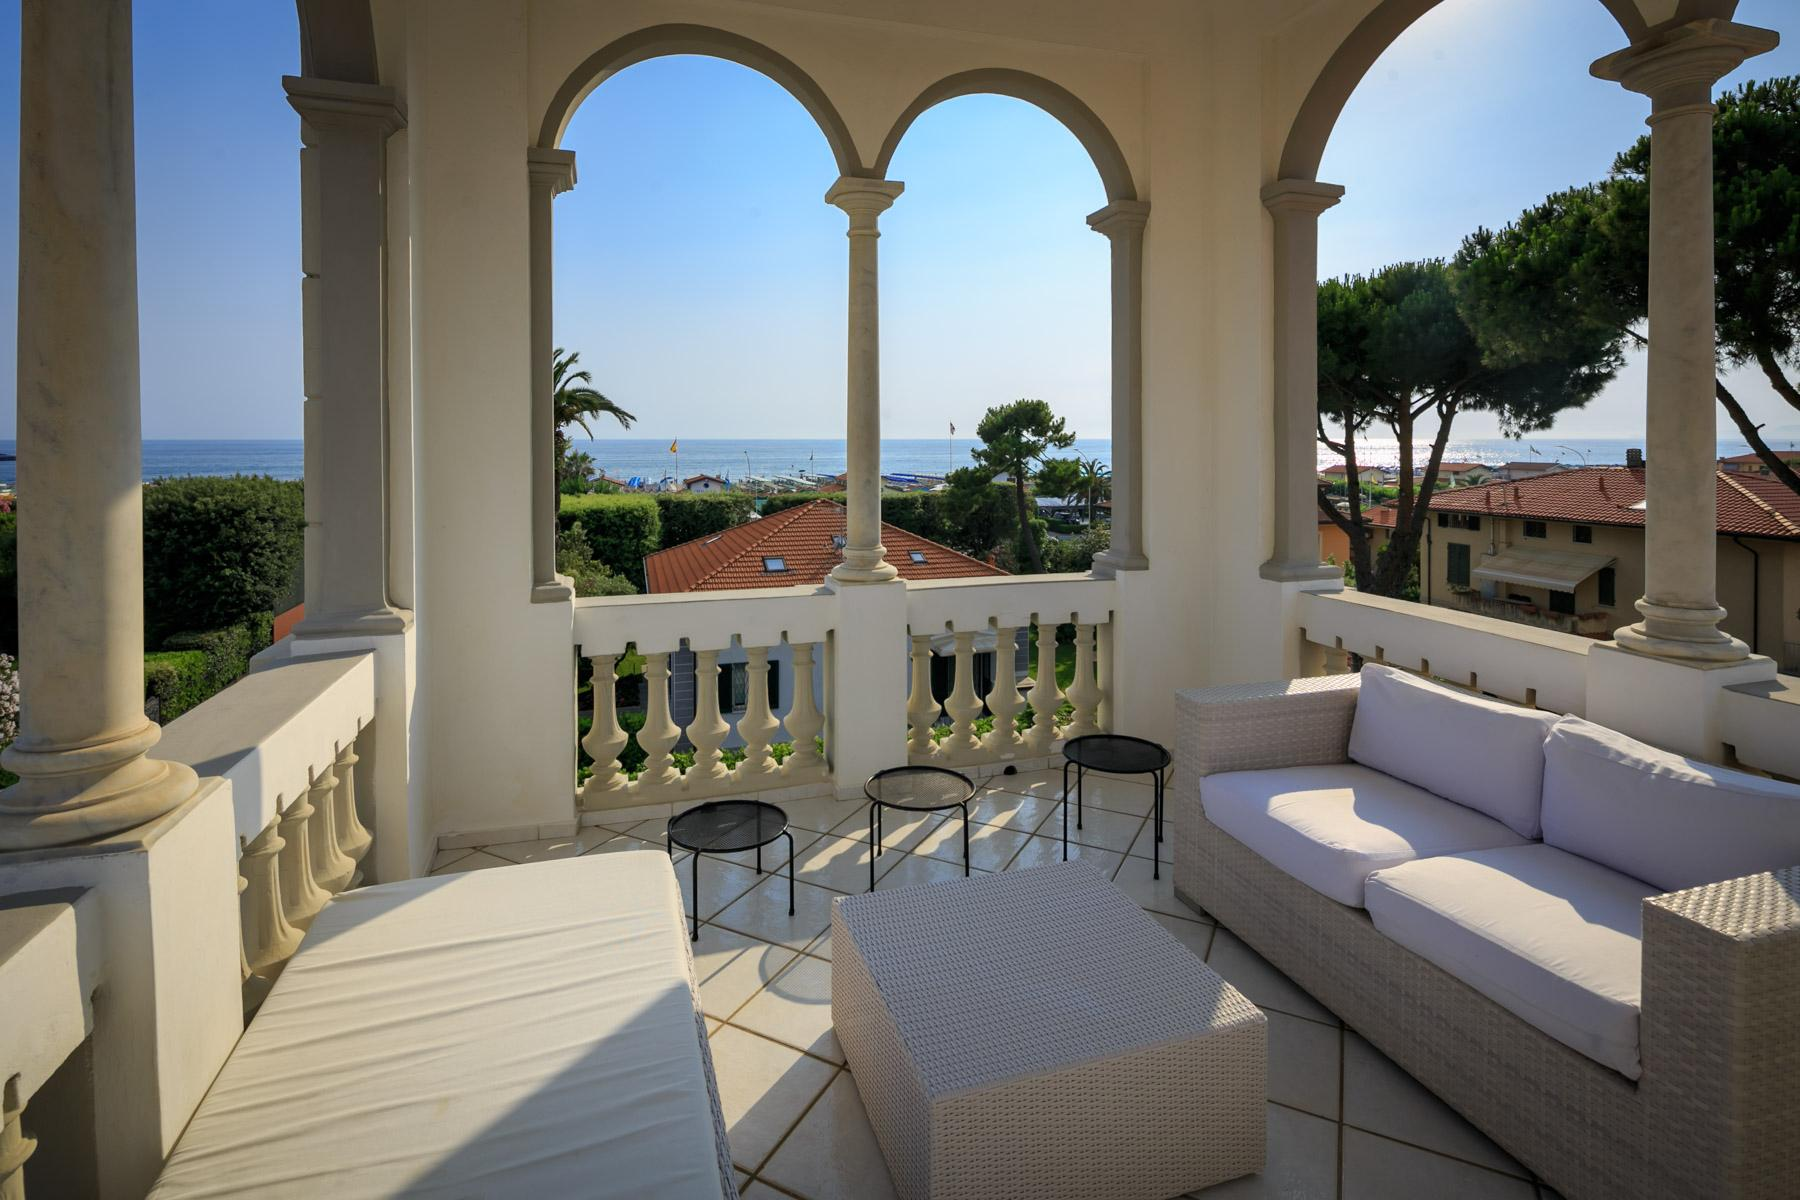 Seafront Villa with tower in Forte dei Marmi - 3